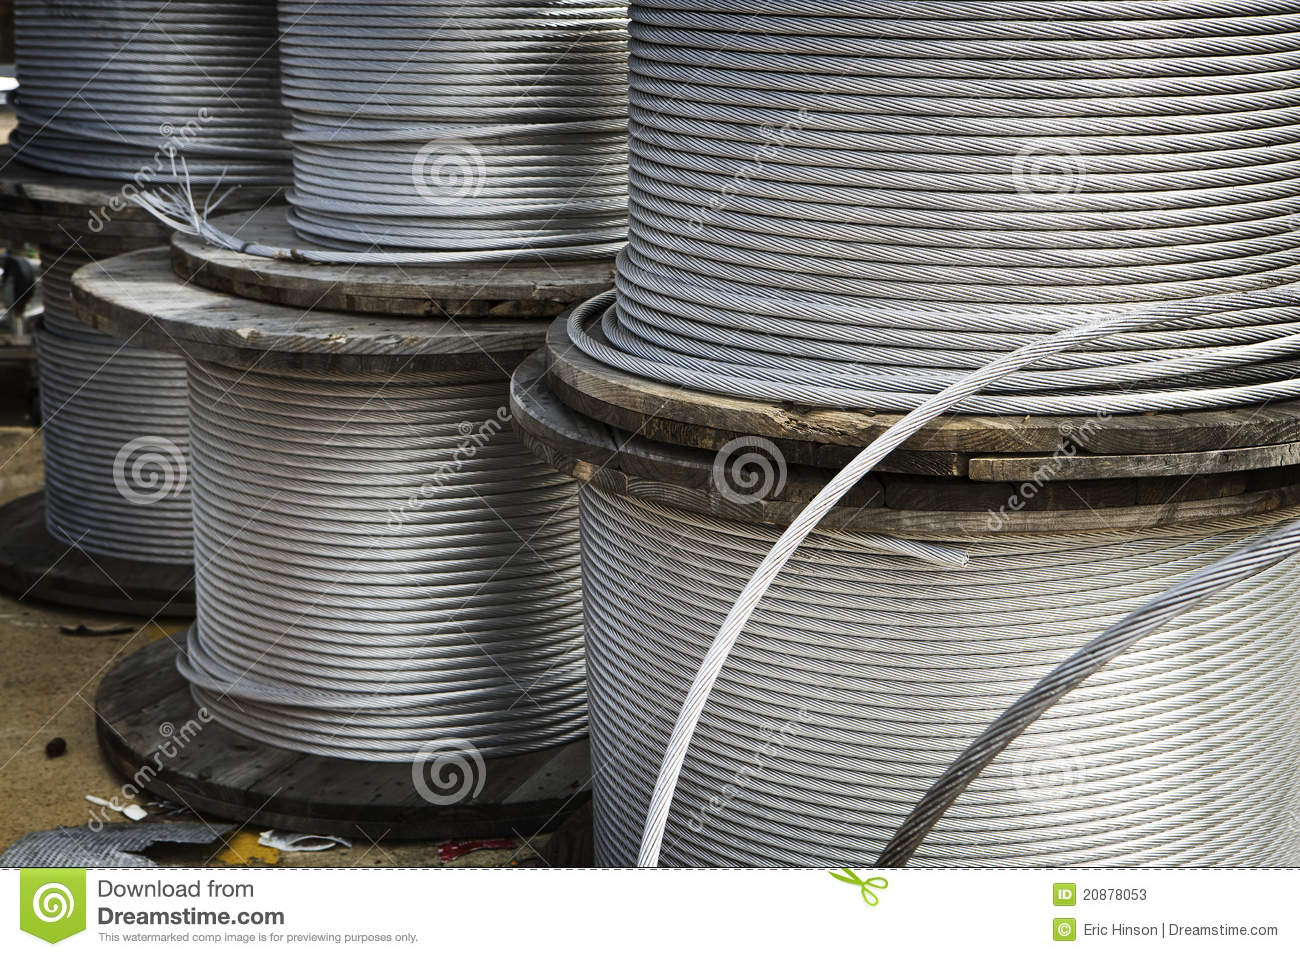 Heavy Duty Cable : Heavy duty metal cable stock image of stacked